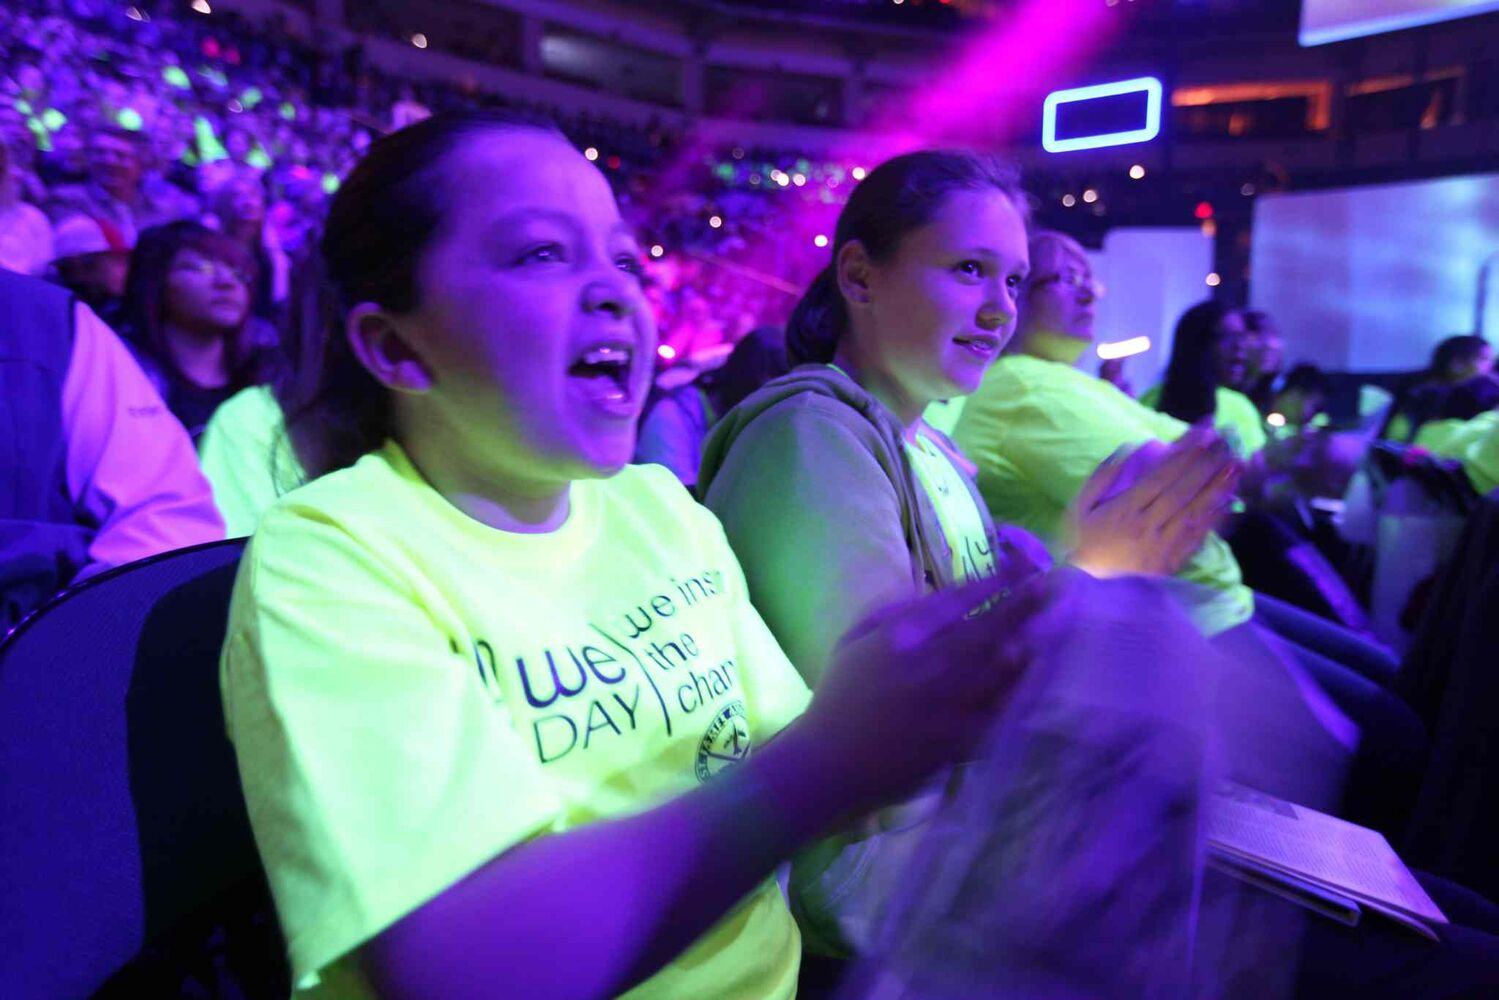 Caitie McHugh (front) and Brynn McGinnis of Lincoln School scream with excitement during We Day.